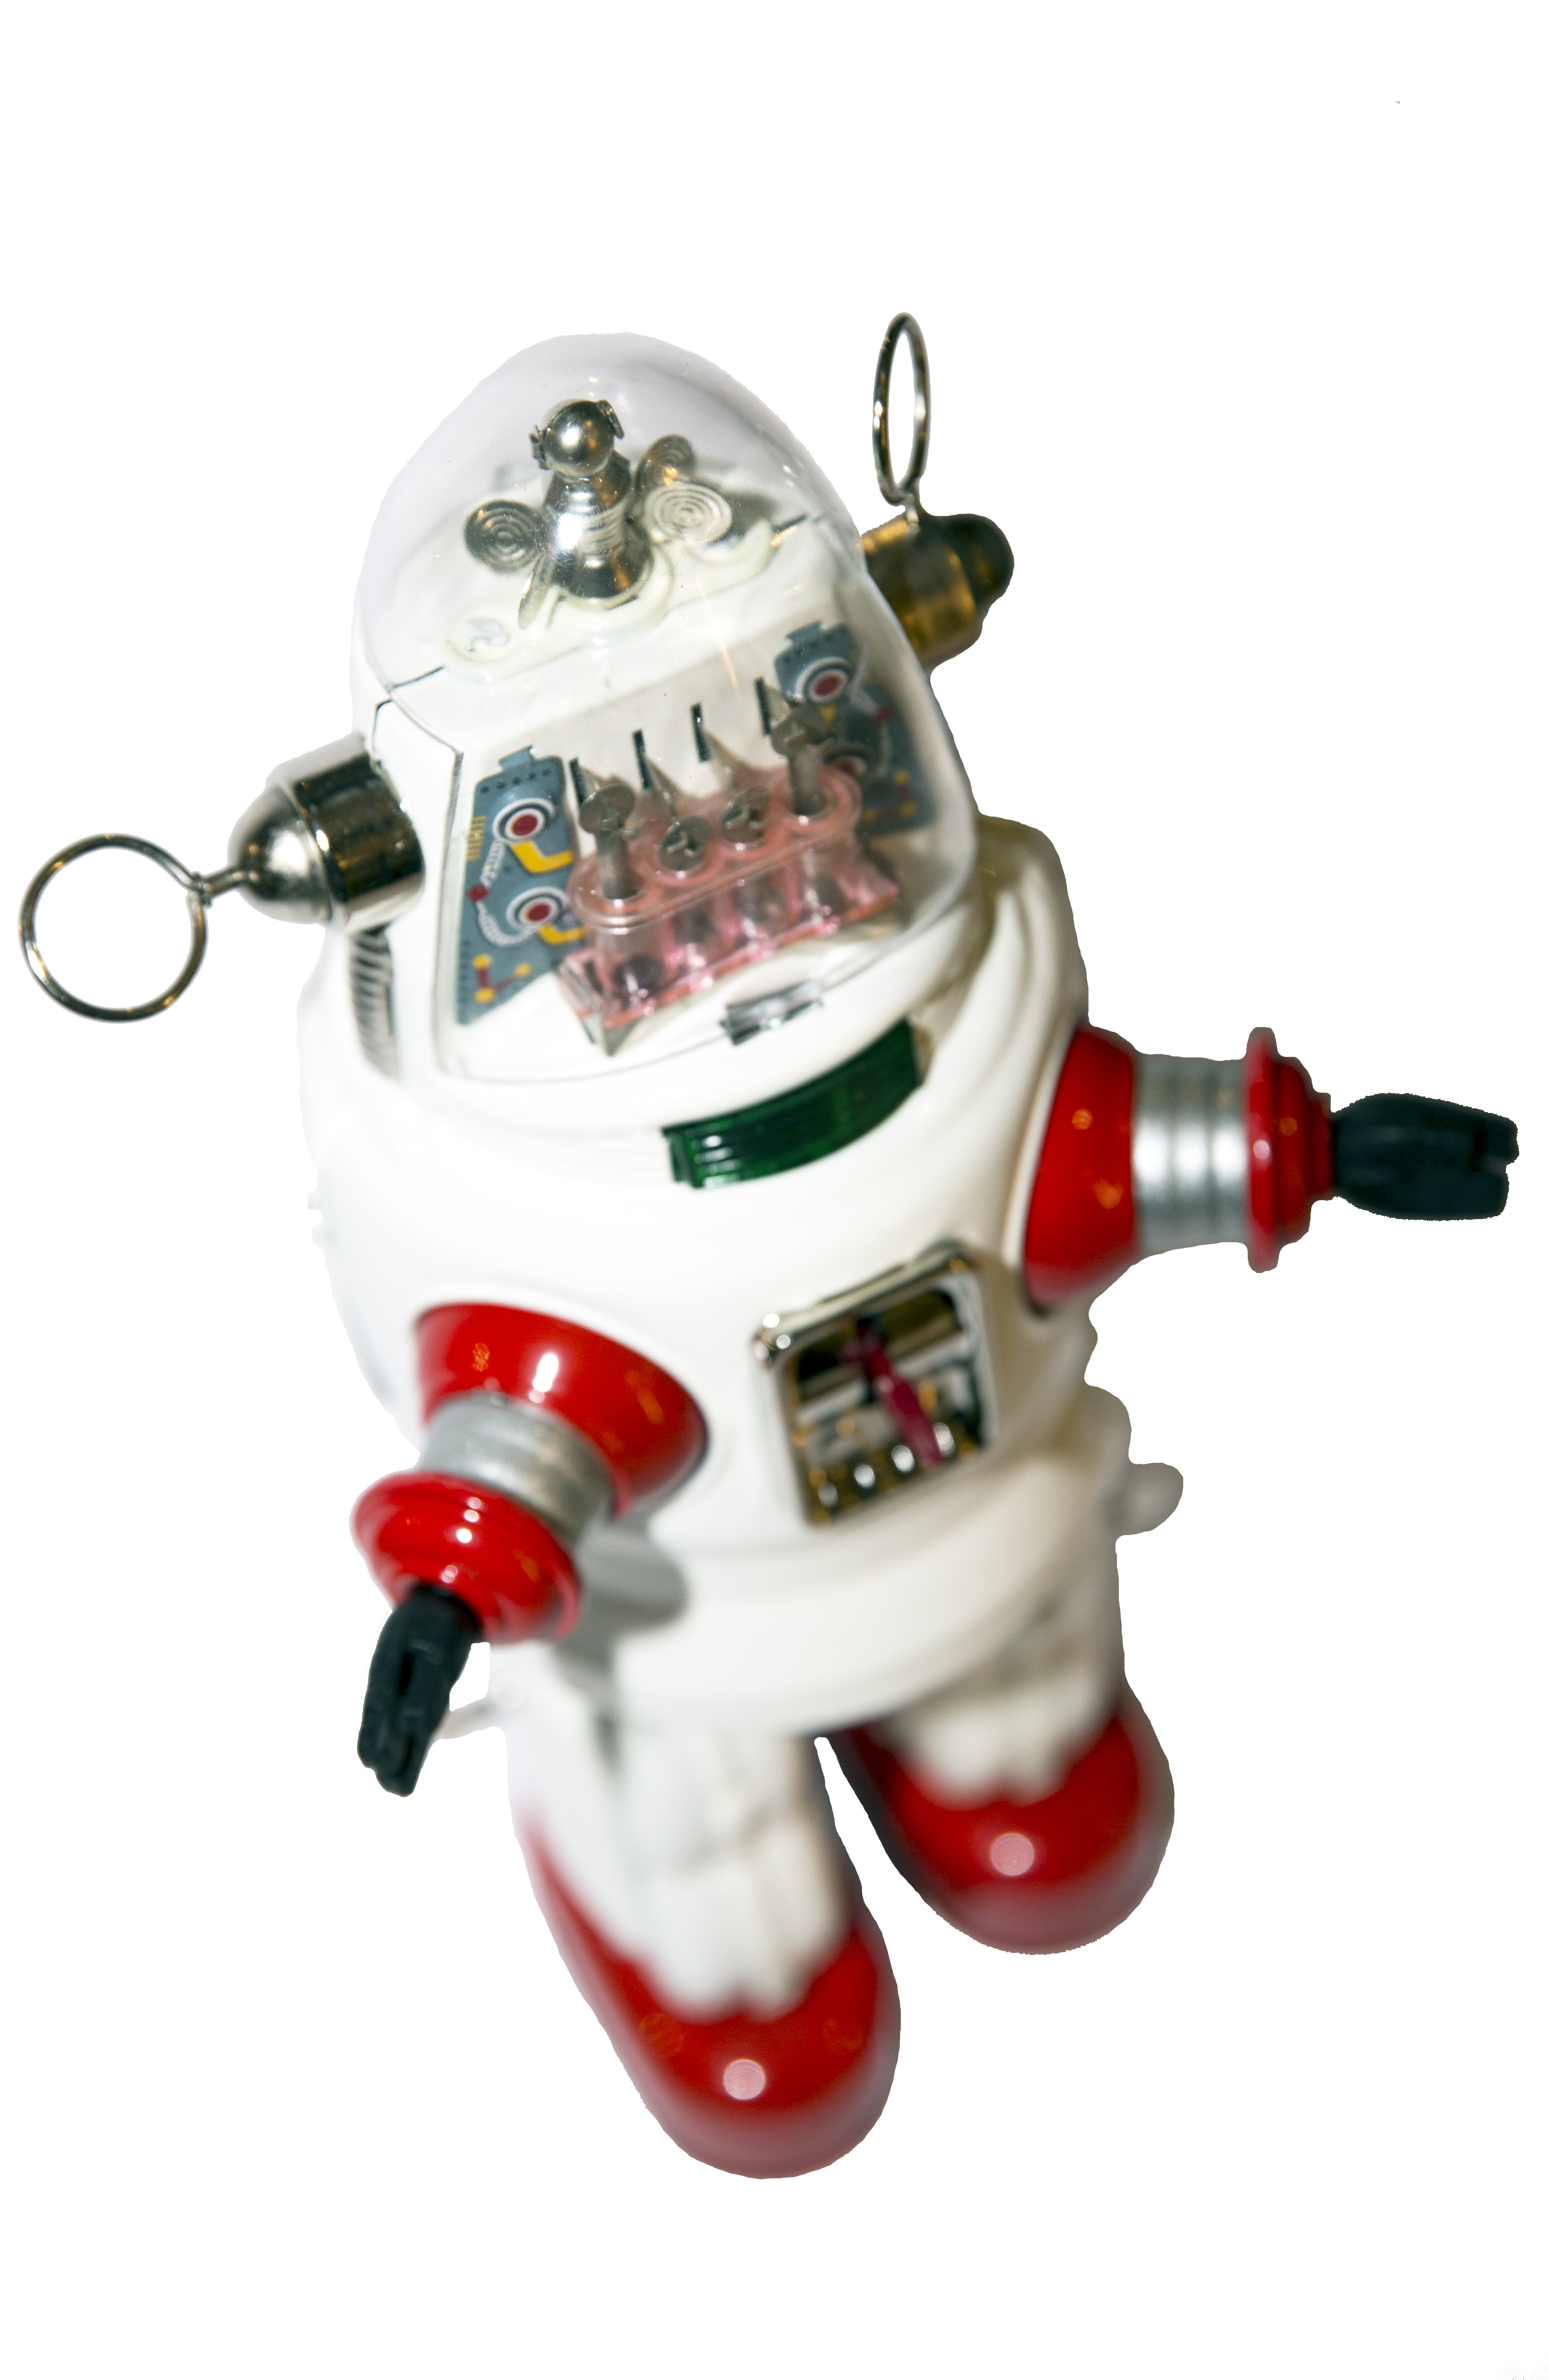 MECHANIZED ROBBY THE ROBOT WHITE